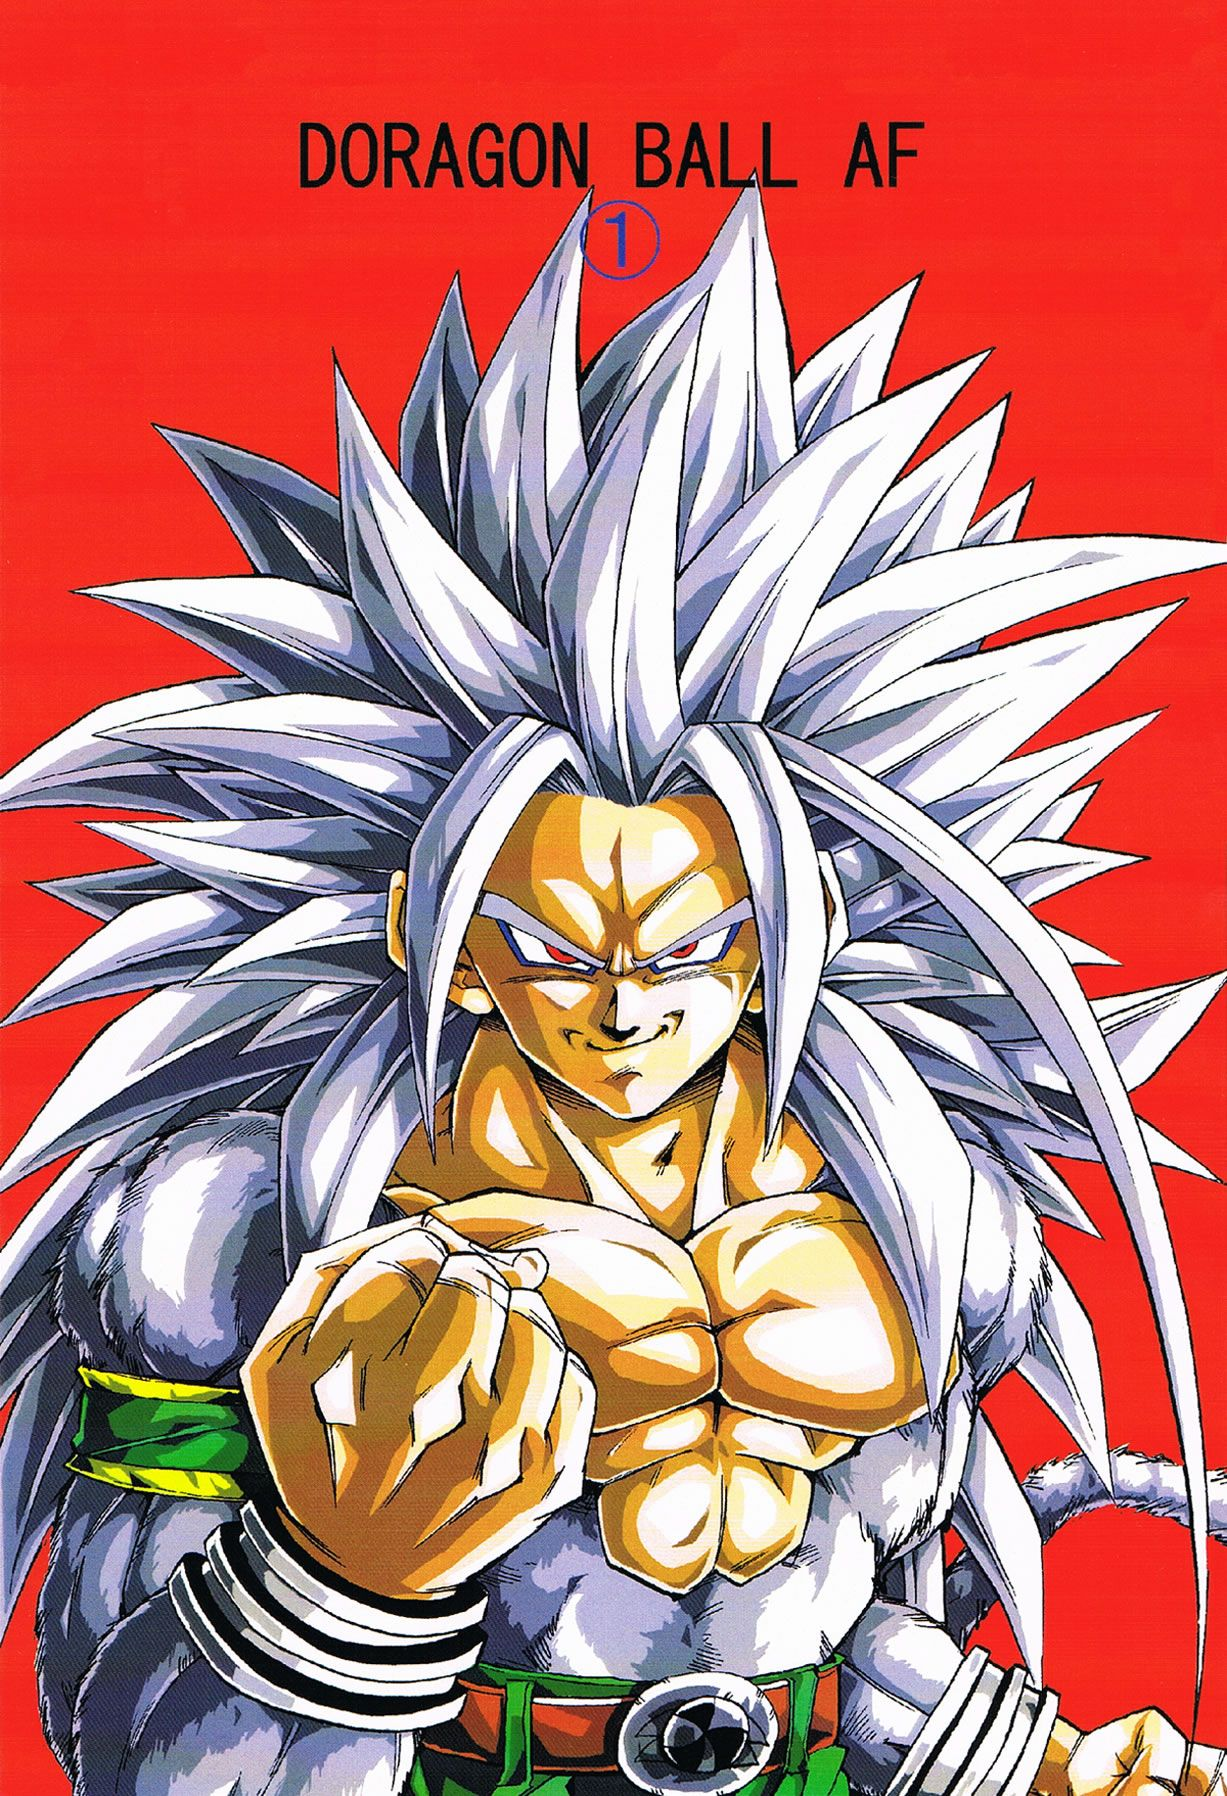 Joker Reader Dragon Ball Af Chapter 1 Super Sayajin Desenhos Dragonball Personagens De Anime